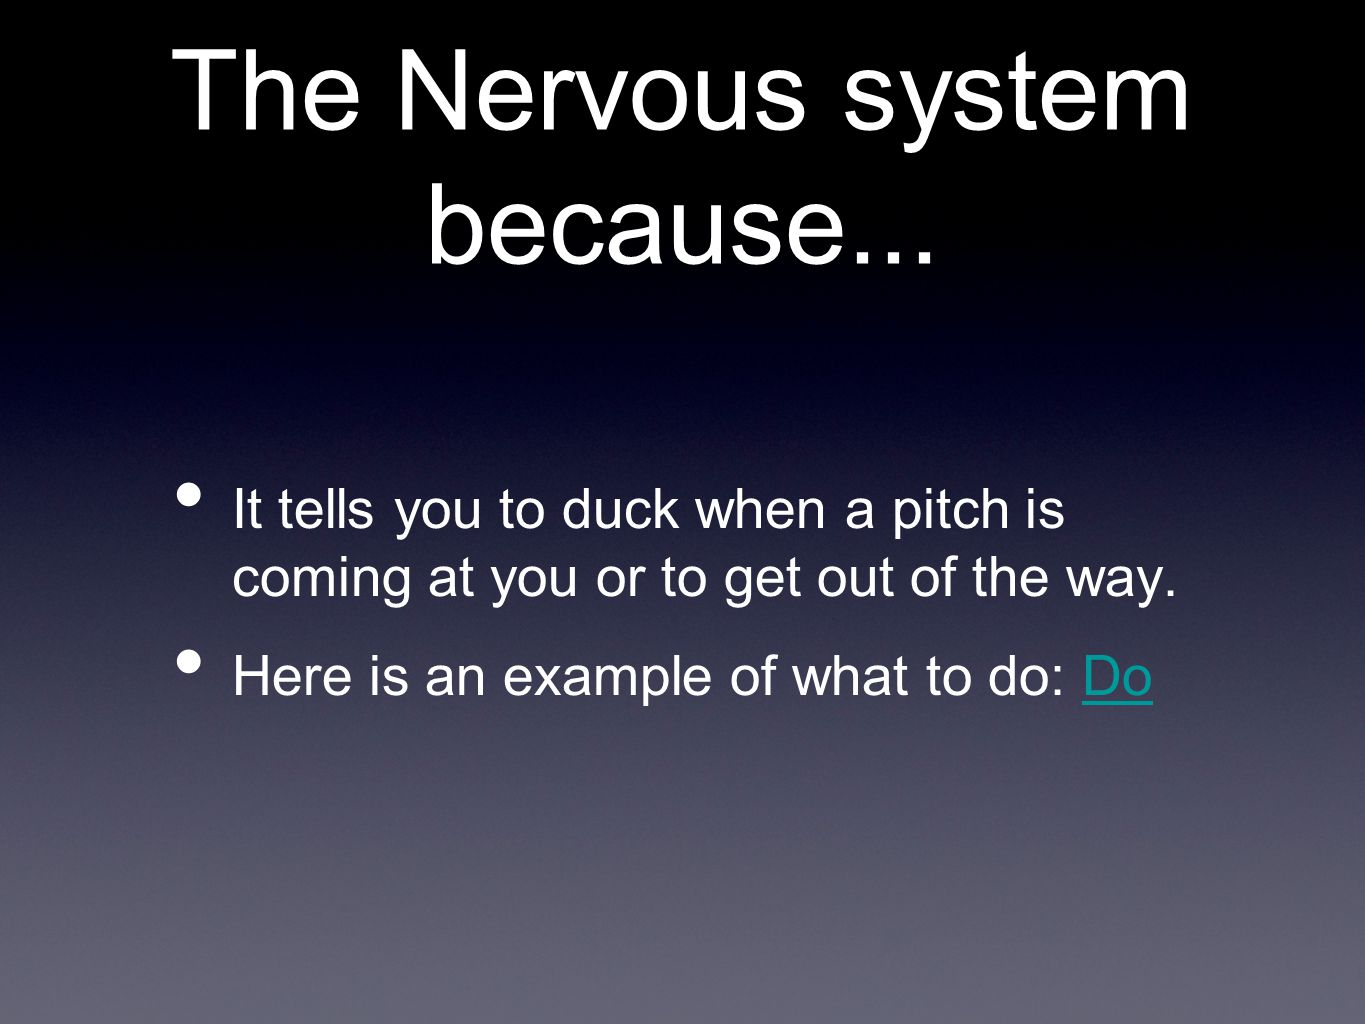 The Nervous system because...